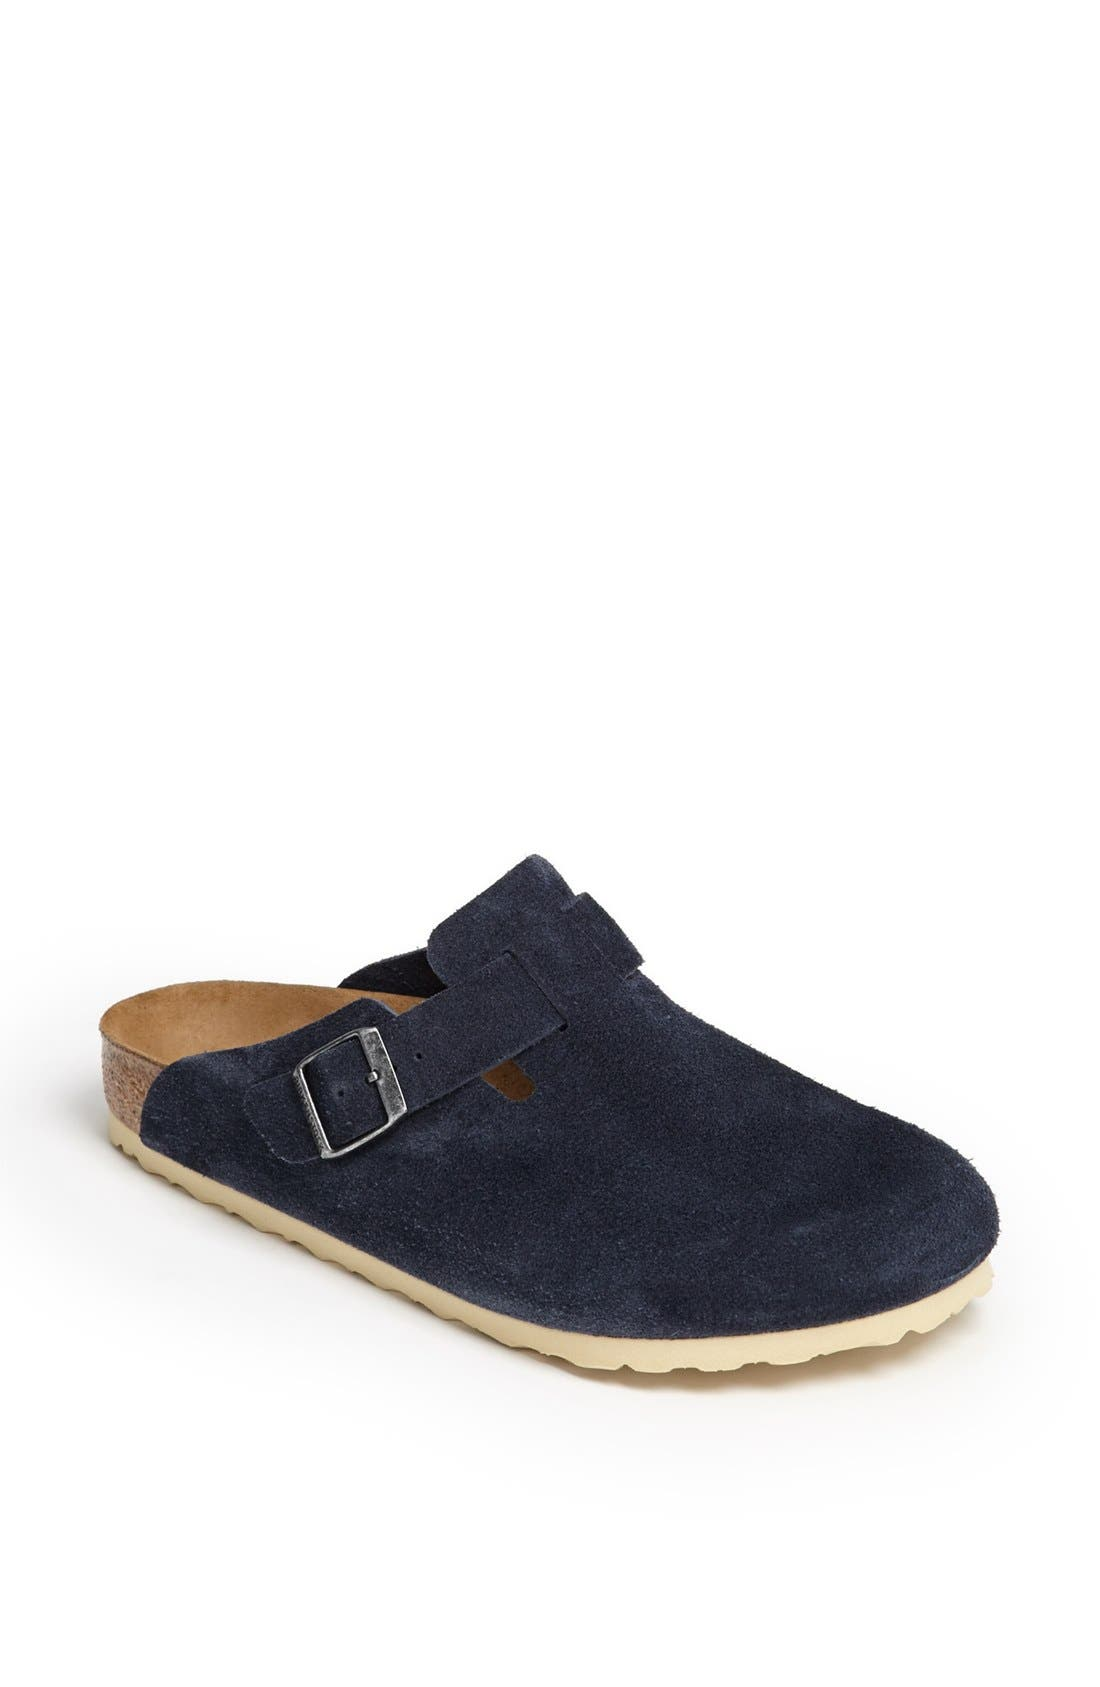 Main Image - Birkenstock 'Boston Soft' Suede Clog (Men)